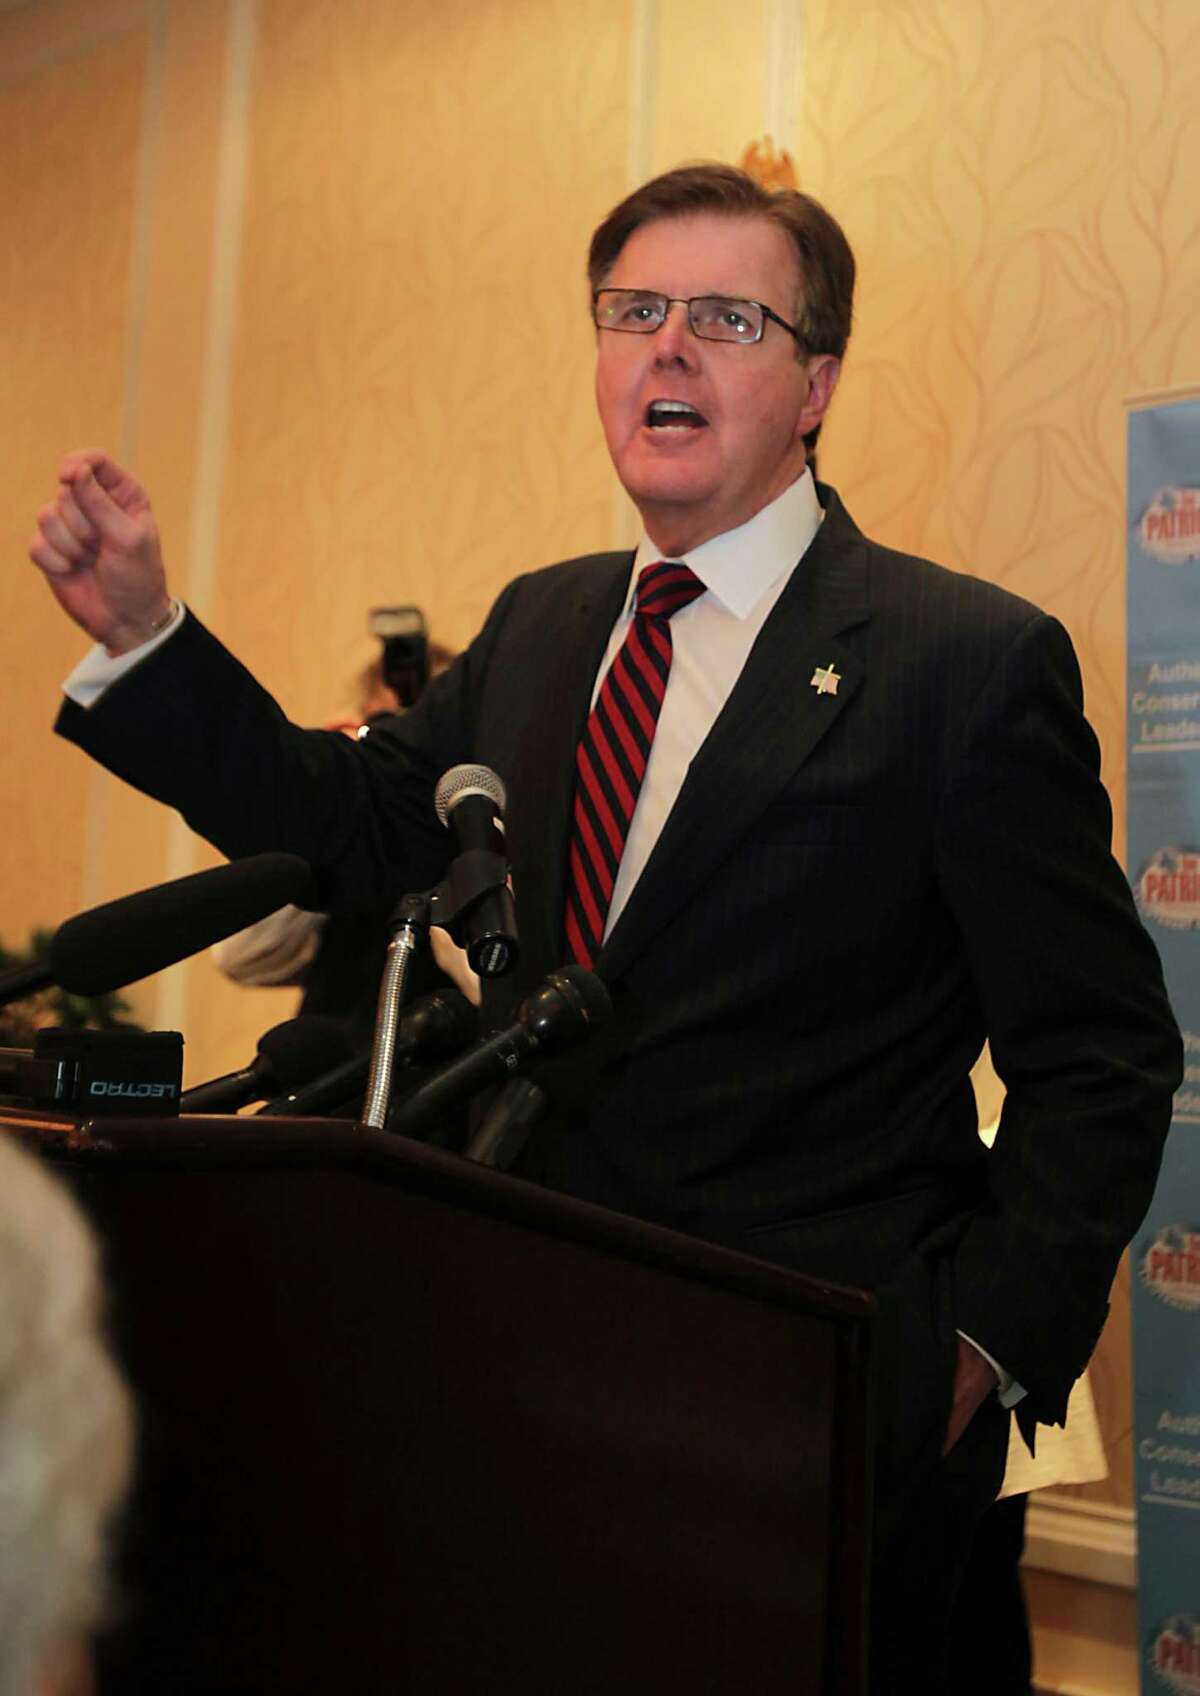 Dan Patrick, a candidate for the Republican nomination for Texas lieutenant governor, speaks during his election watch party Tuesday, March 4, 2014, in Houston. ((AP Photo/Houston Chronicle, James Nielsen) MANDATORY CREDIT